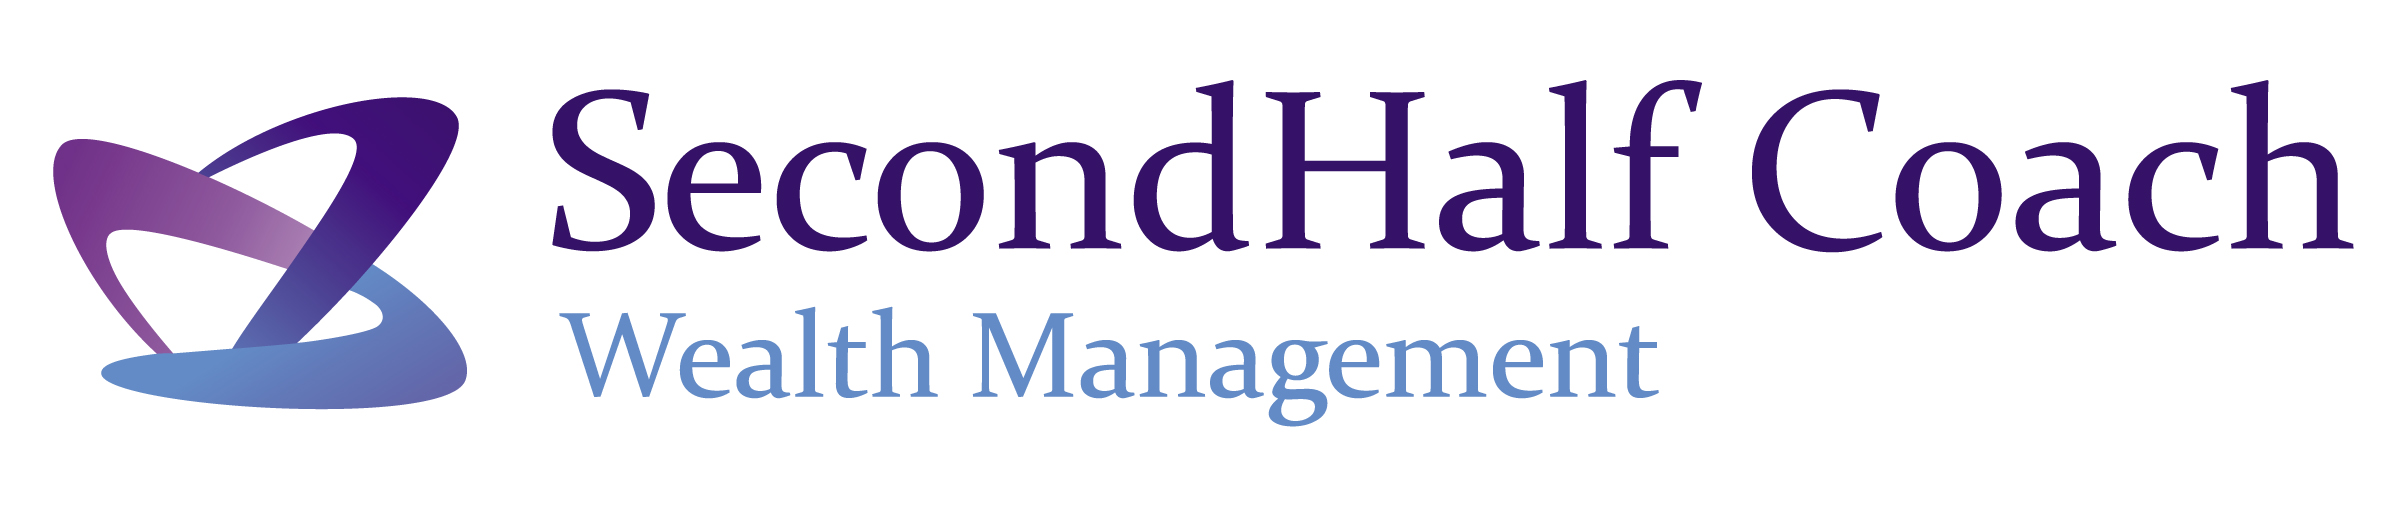 Lead Sponsor SecondHalf Coach Wealth Management